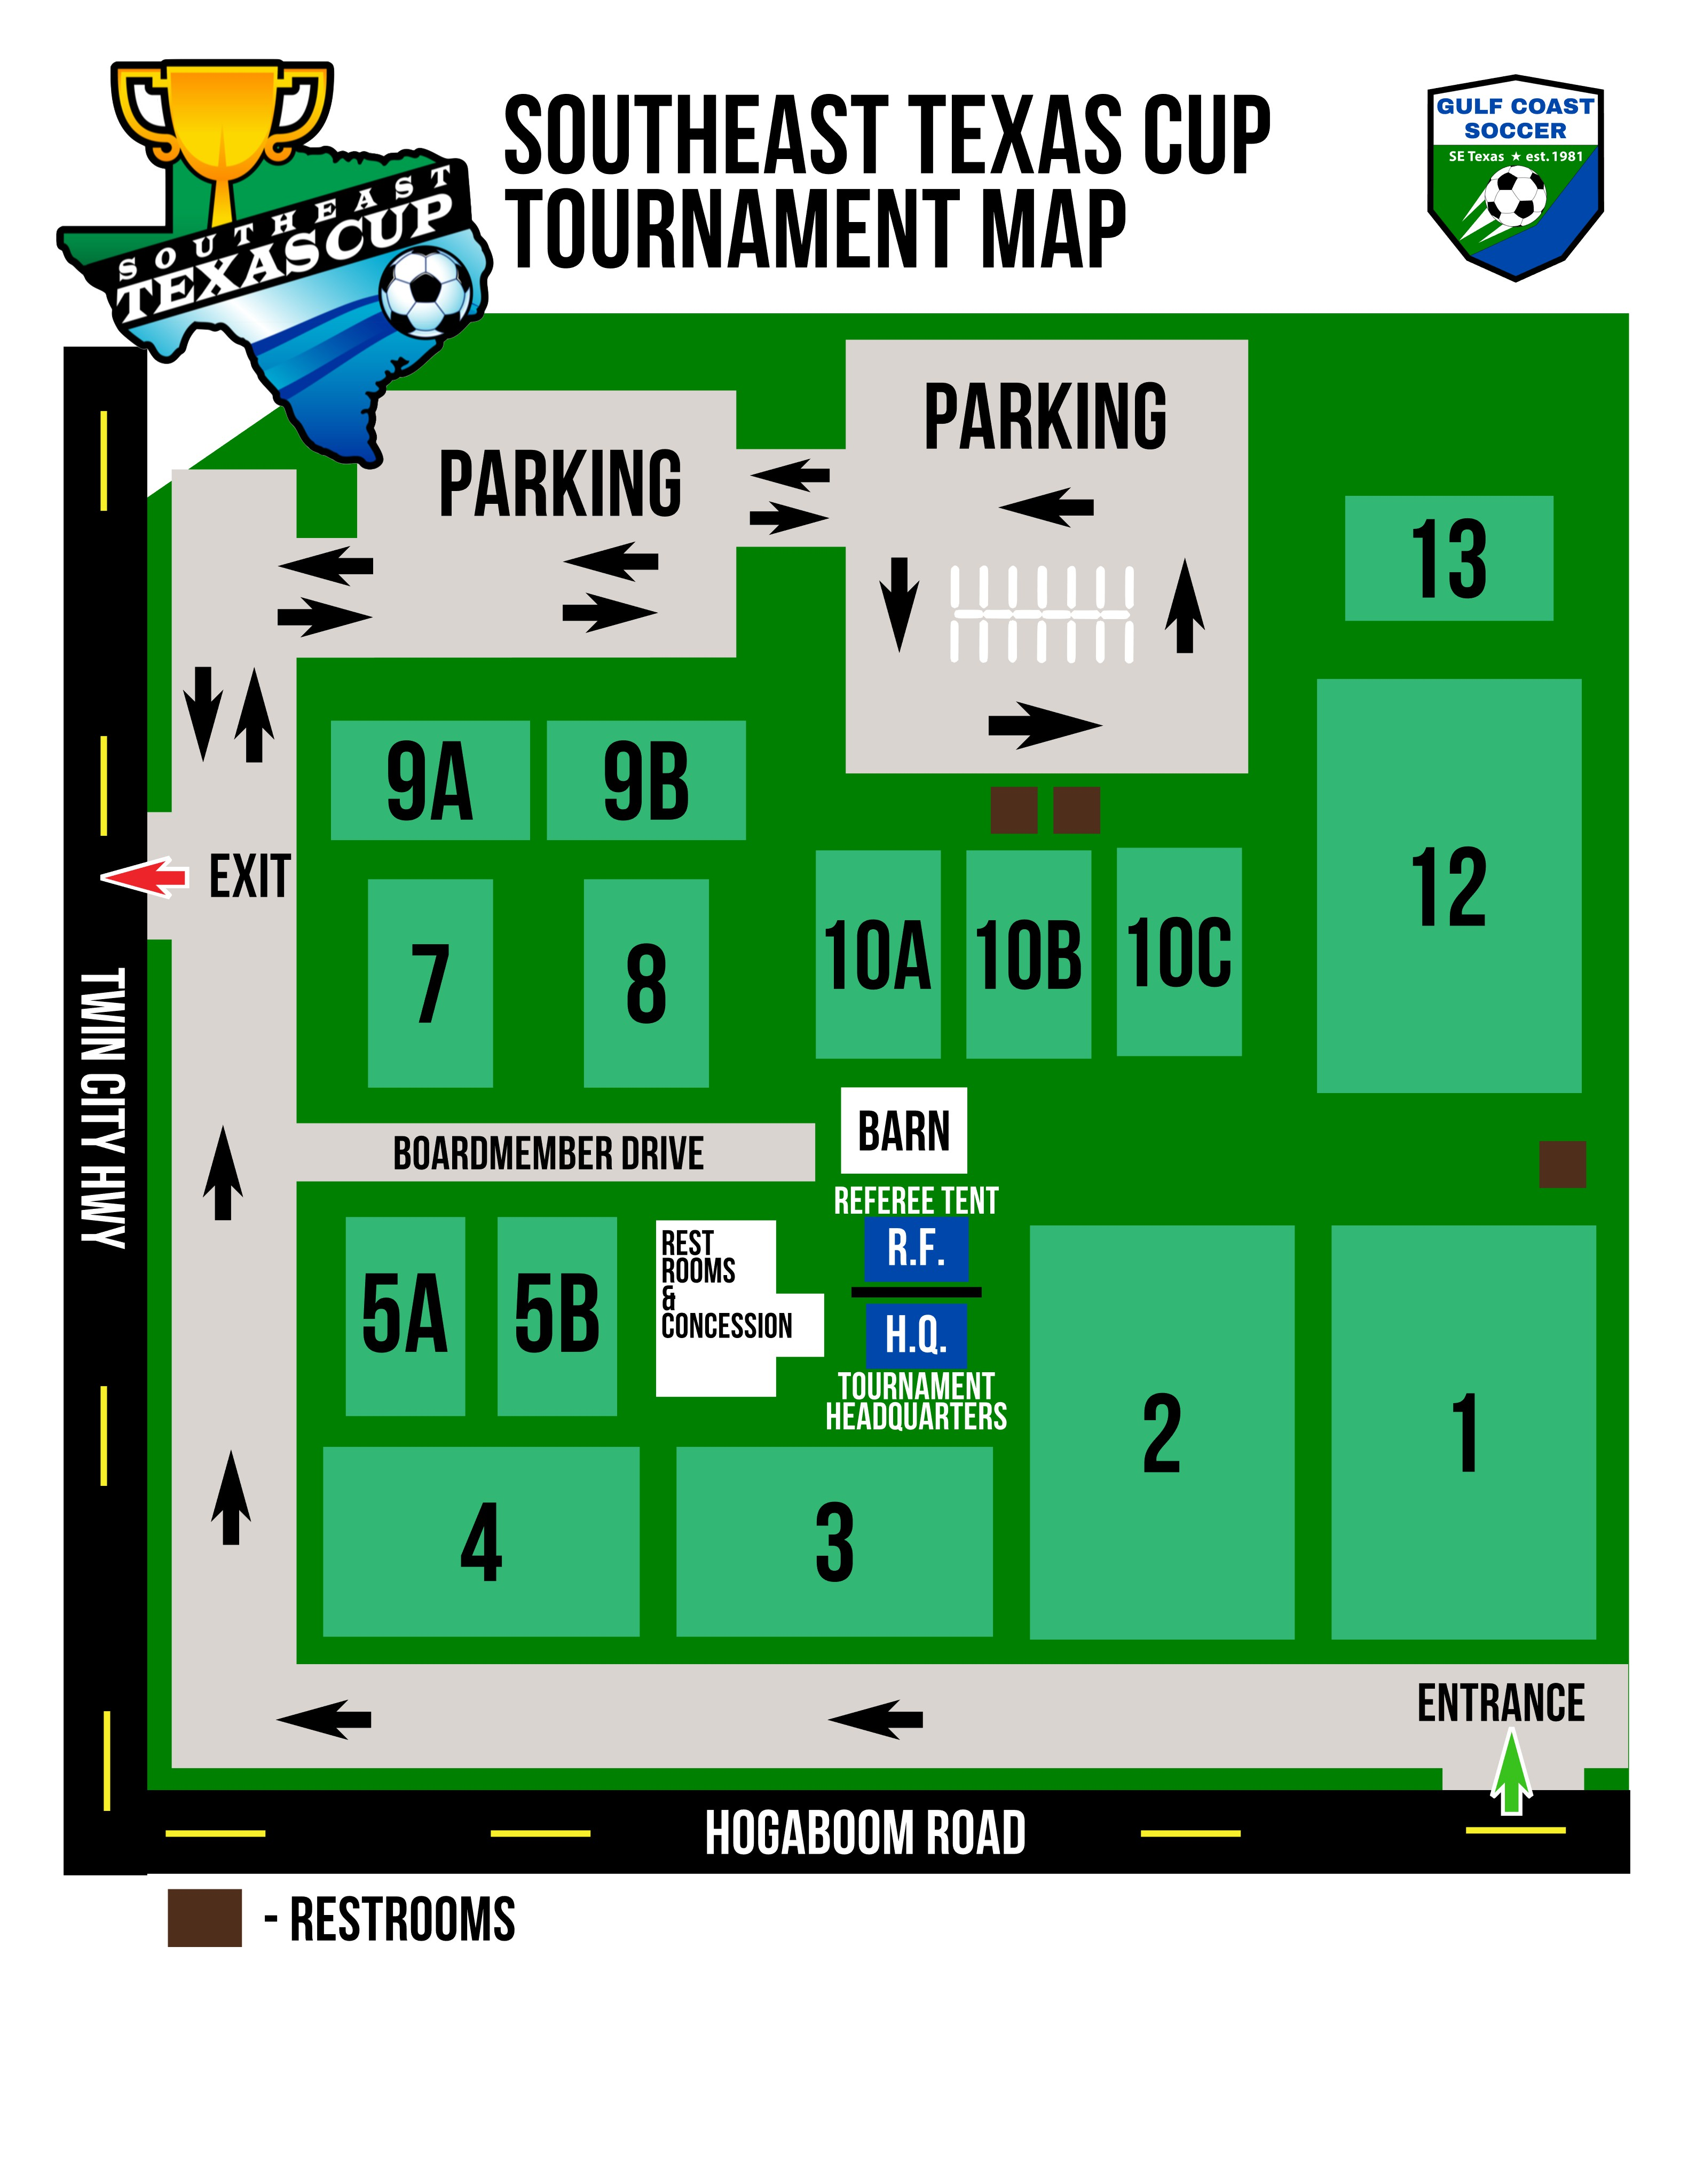 Southesat Texas Cup 2021 - Event Field Map